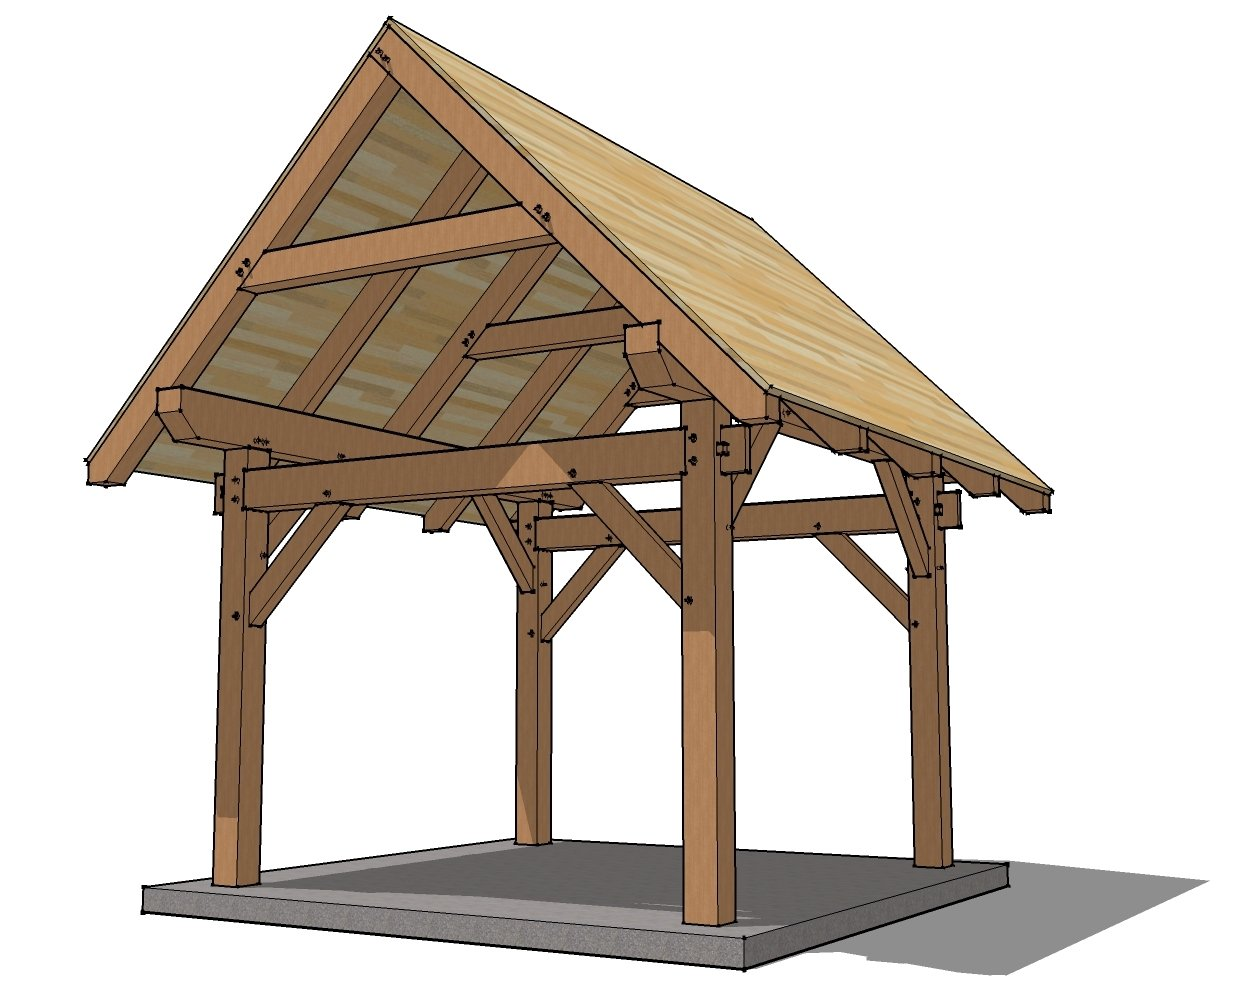 Crav guide to get free 12x12 shed plans pdf for Timber frame porch designs